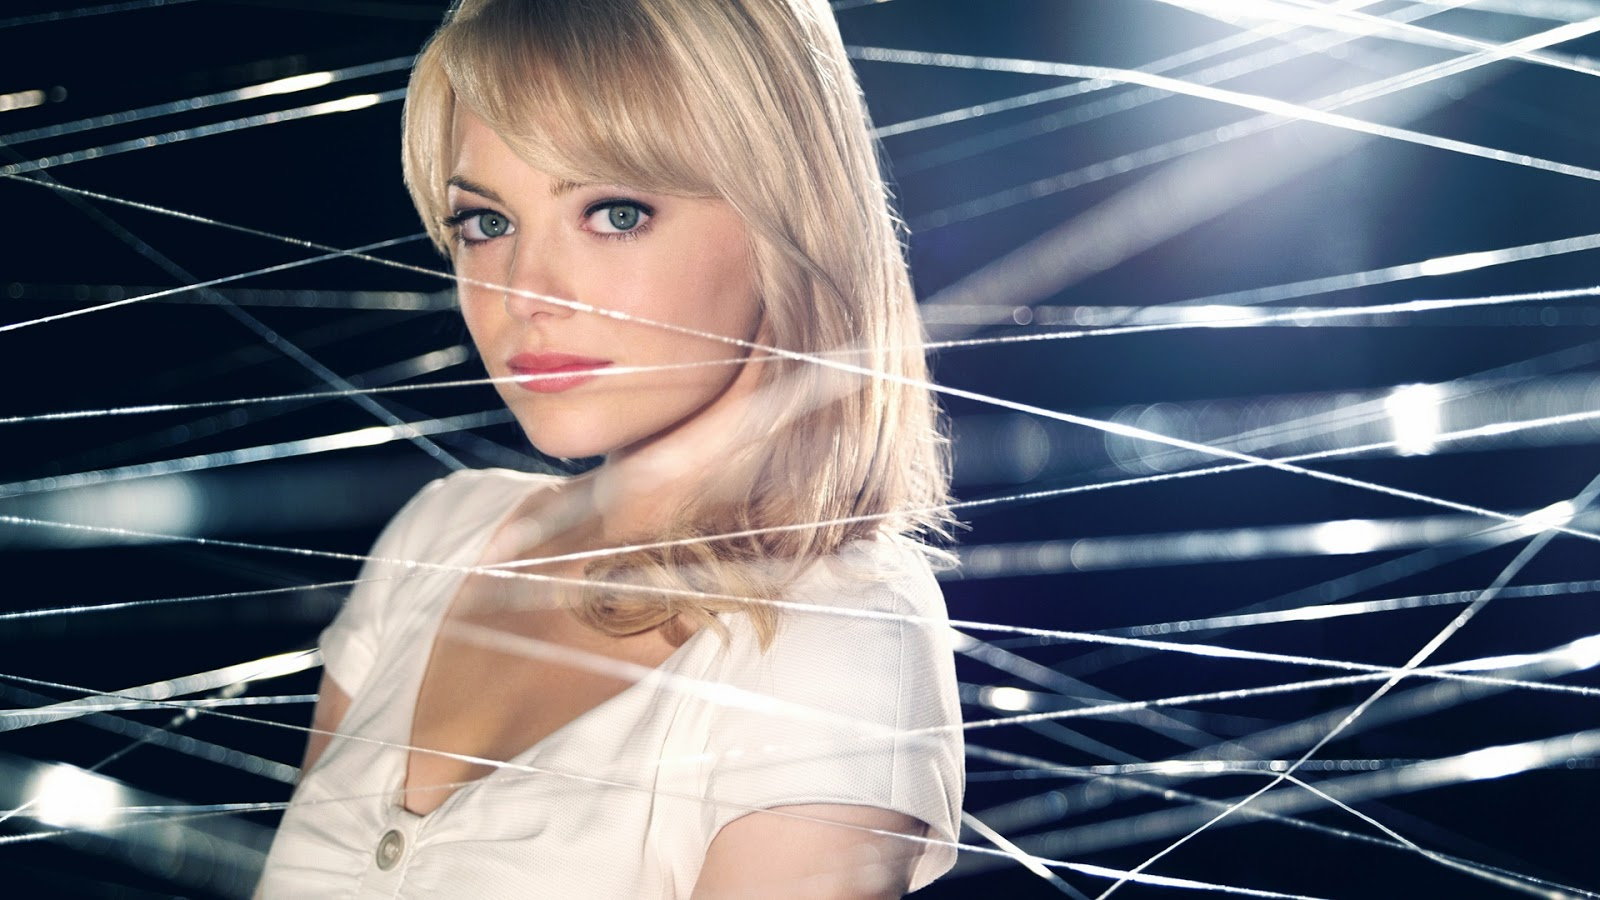 Emma stone hd wallpapers of 2013 hollywood universe - Emma stone wallpaper ...